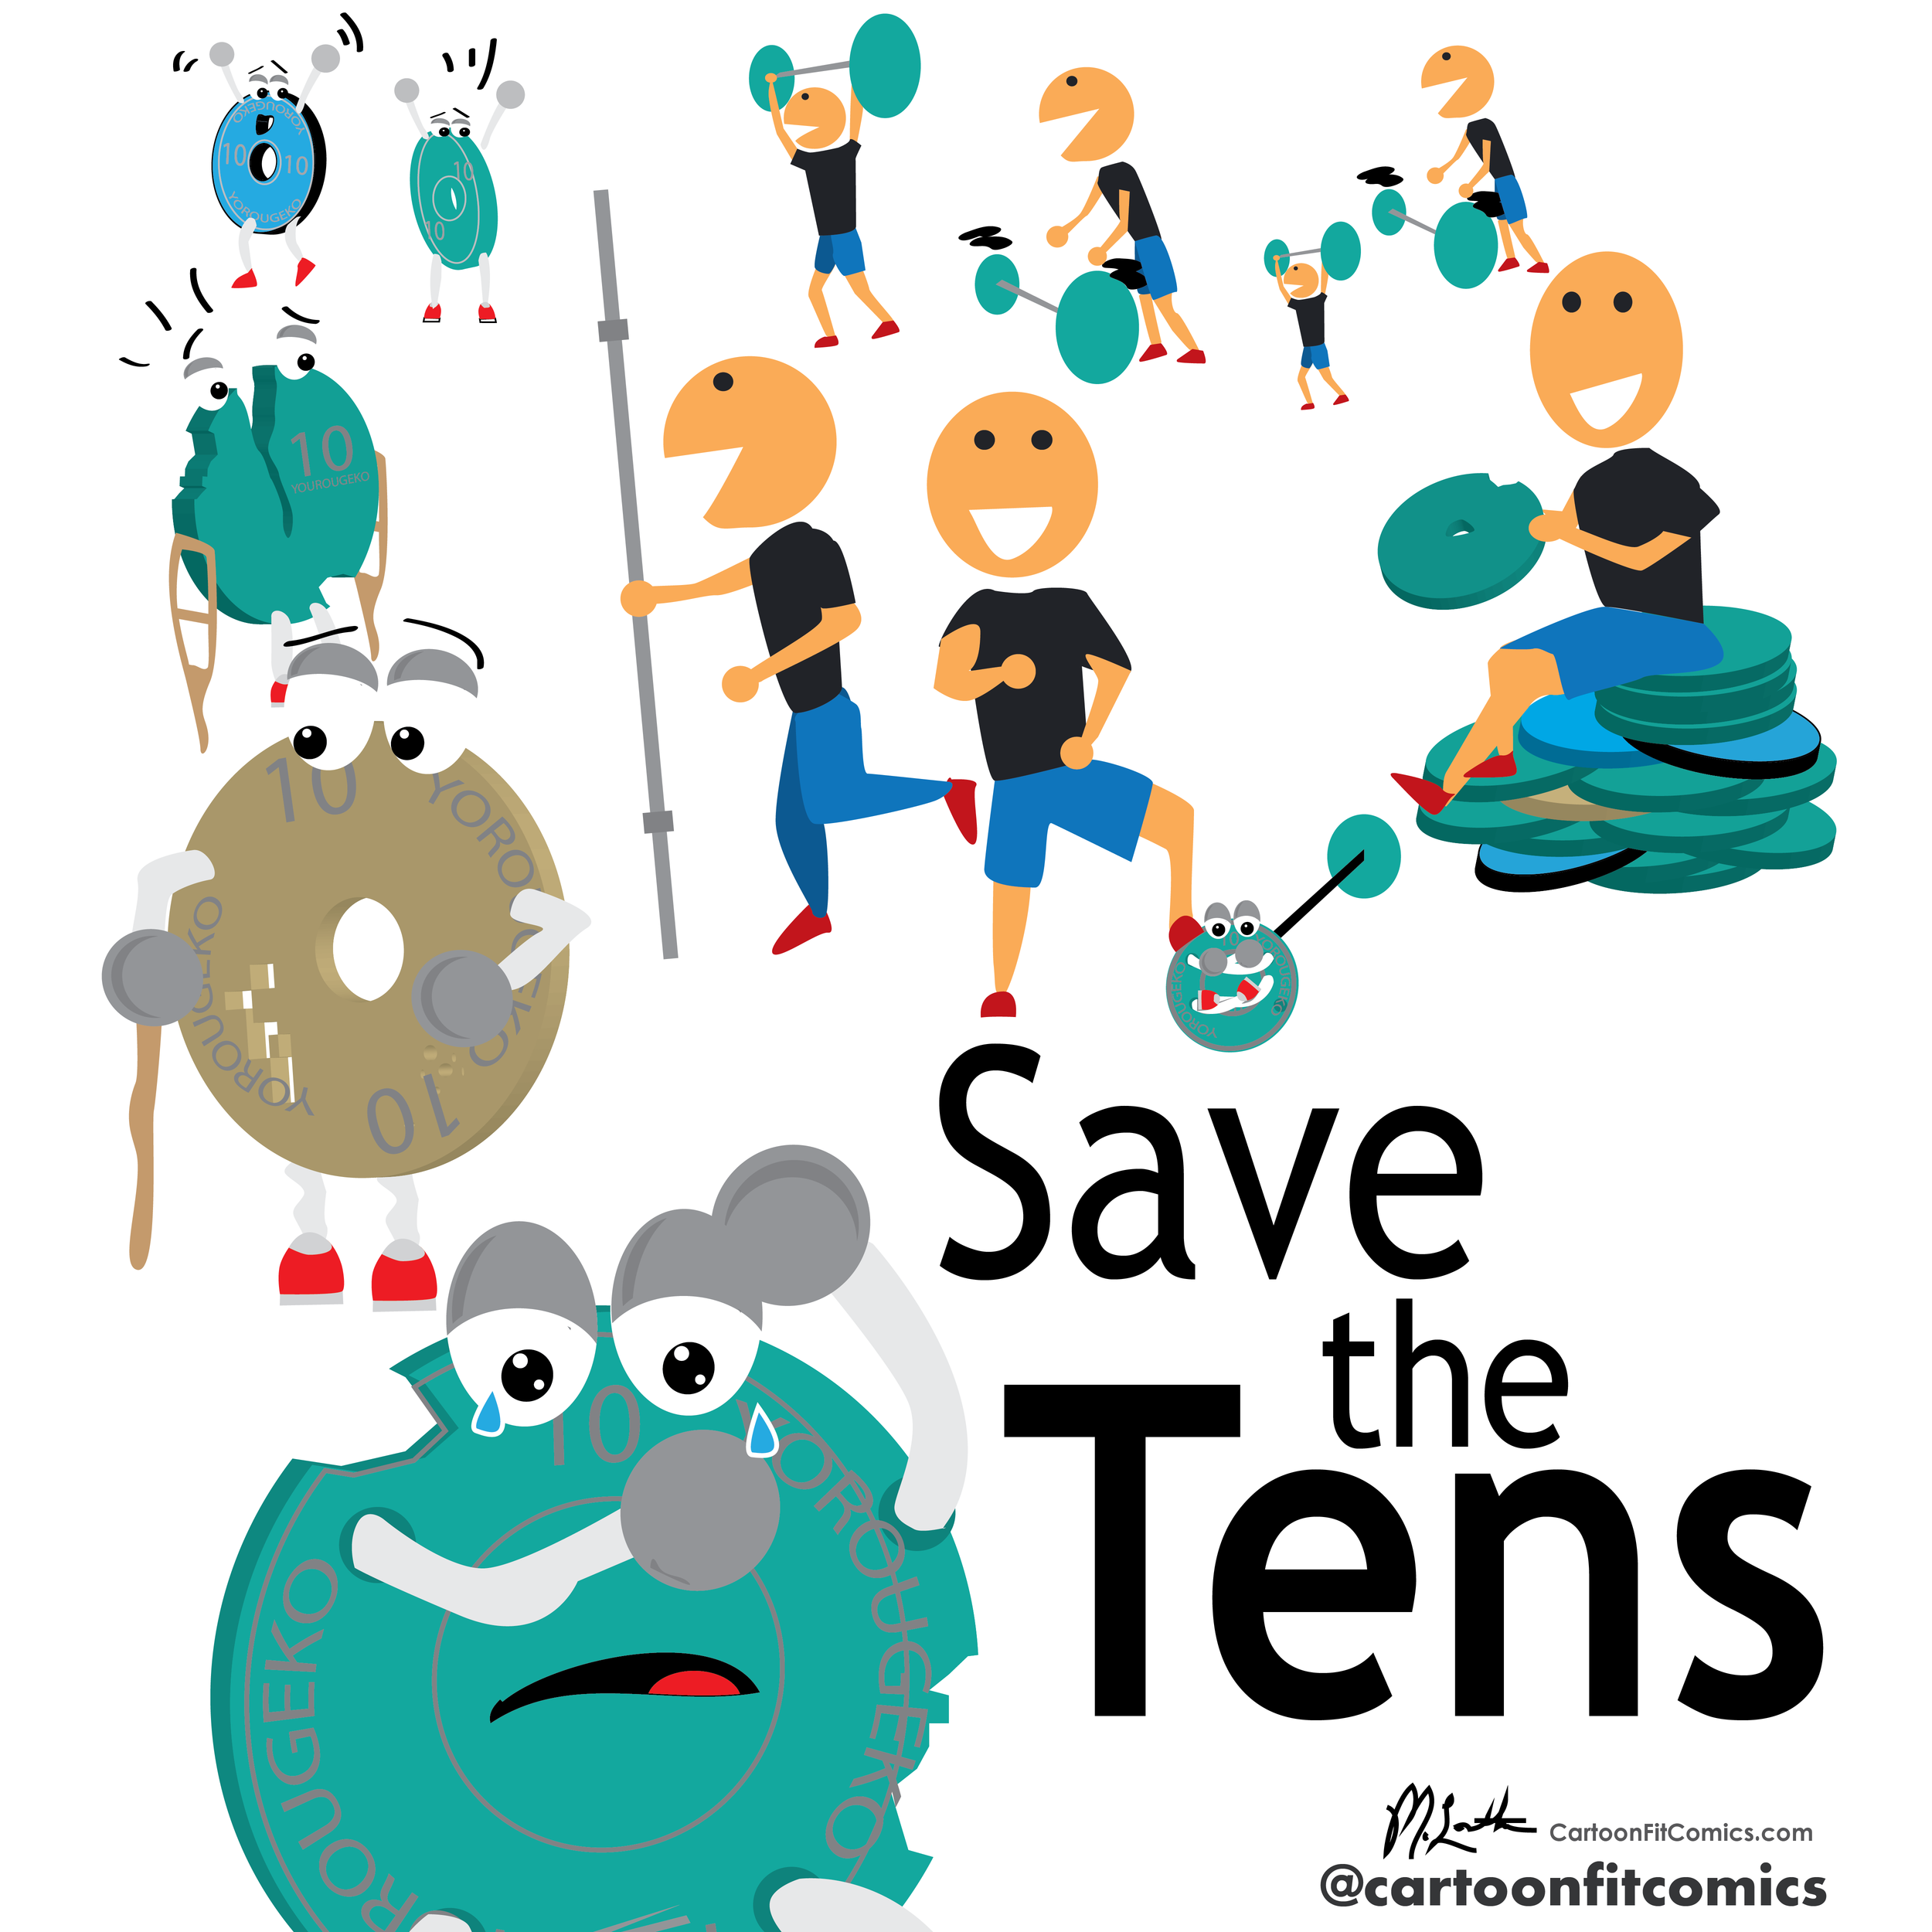 Platey - Save the Tens